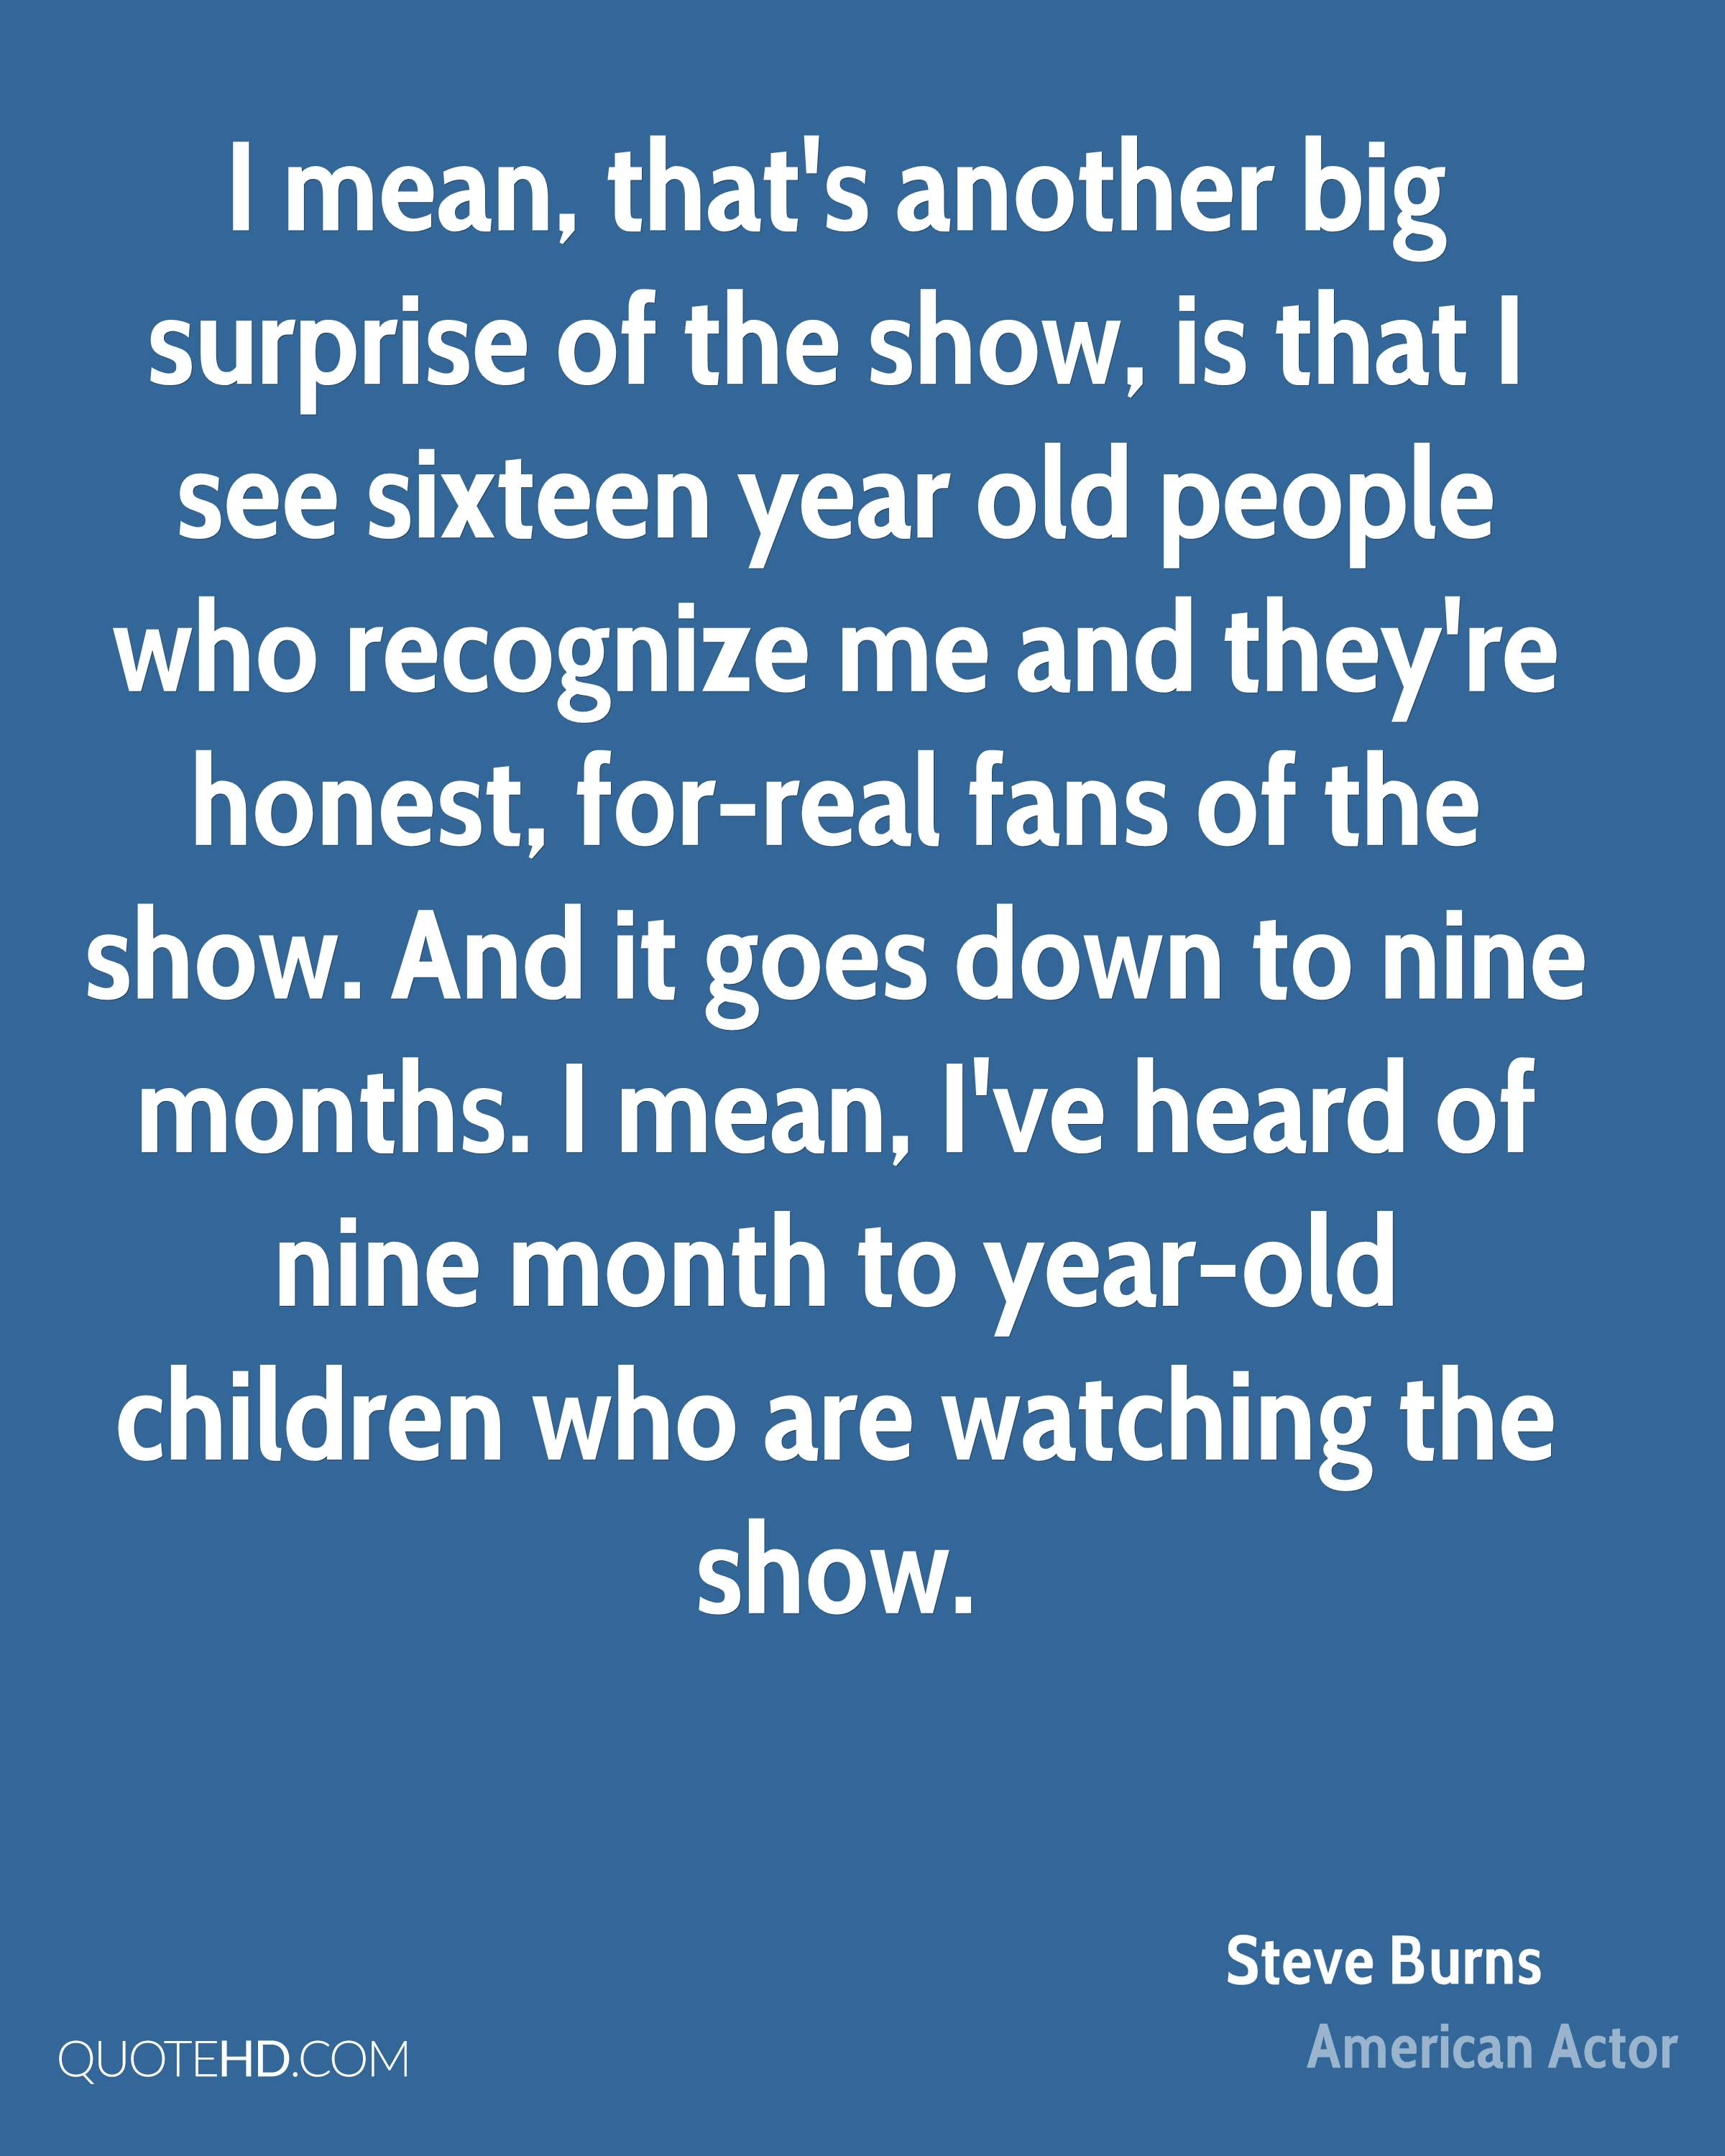 I mean, that's another big surprise of the show, is that I see sixteen year old people who recognize me and they're honest, for-real fans of the show. And it goes down to nine months. I mean, I've heard of nine month to year-old children who are watching the show.